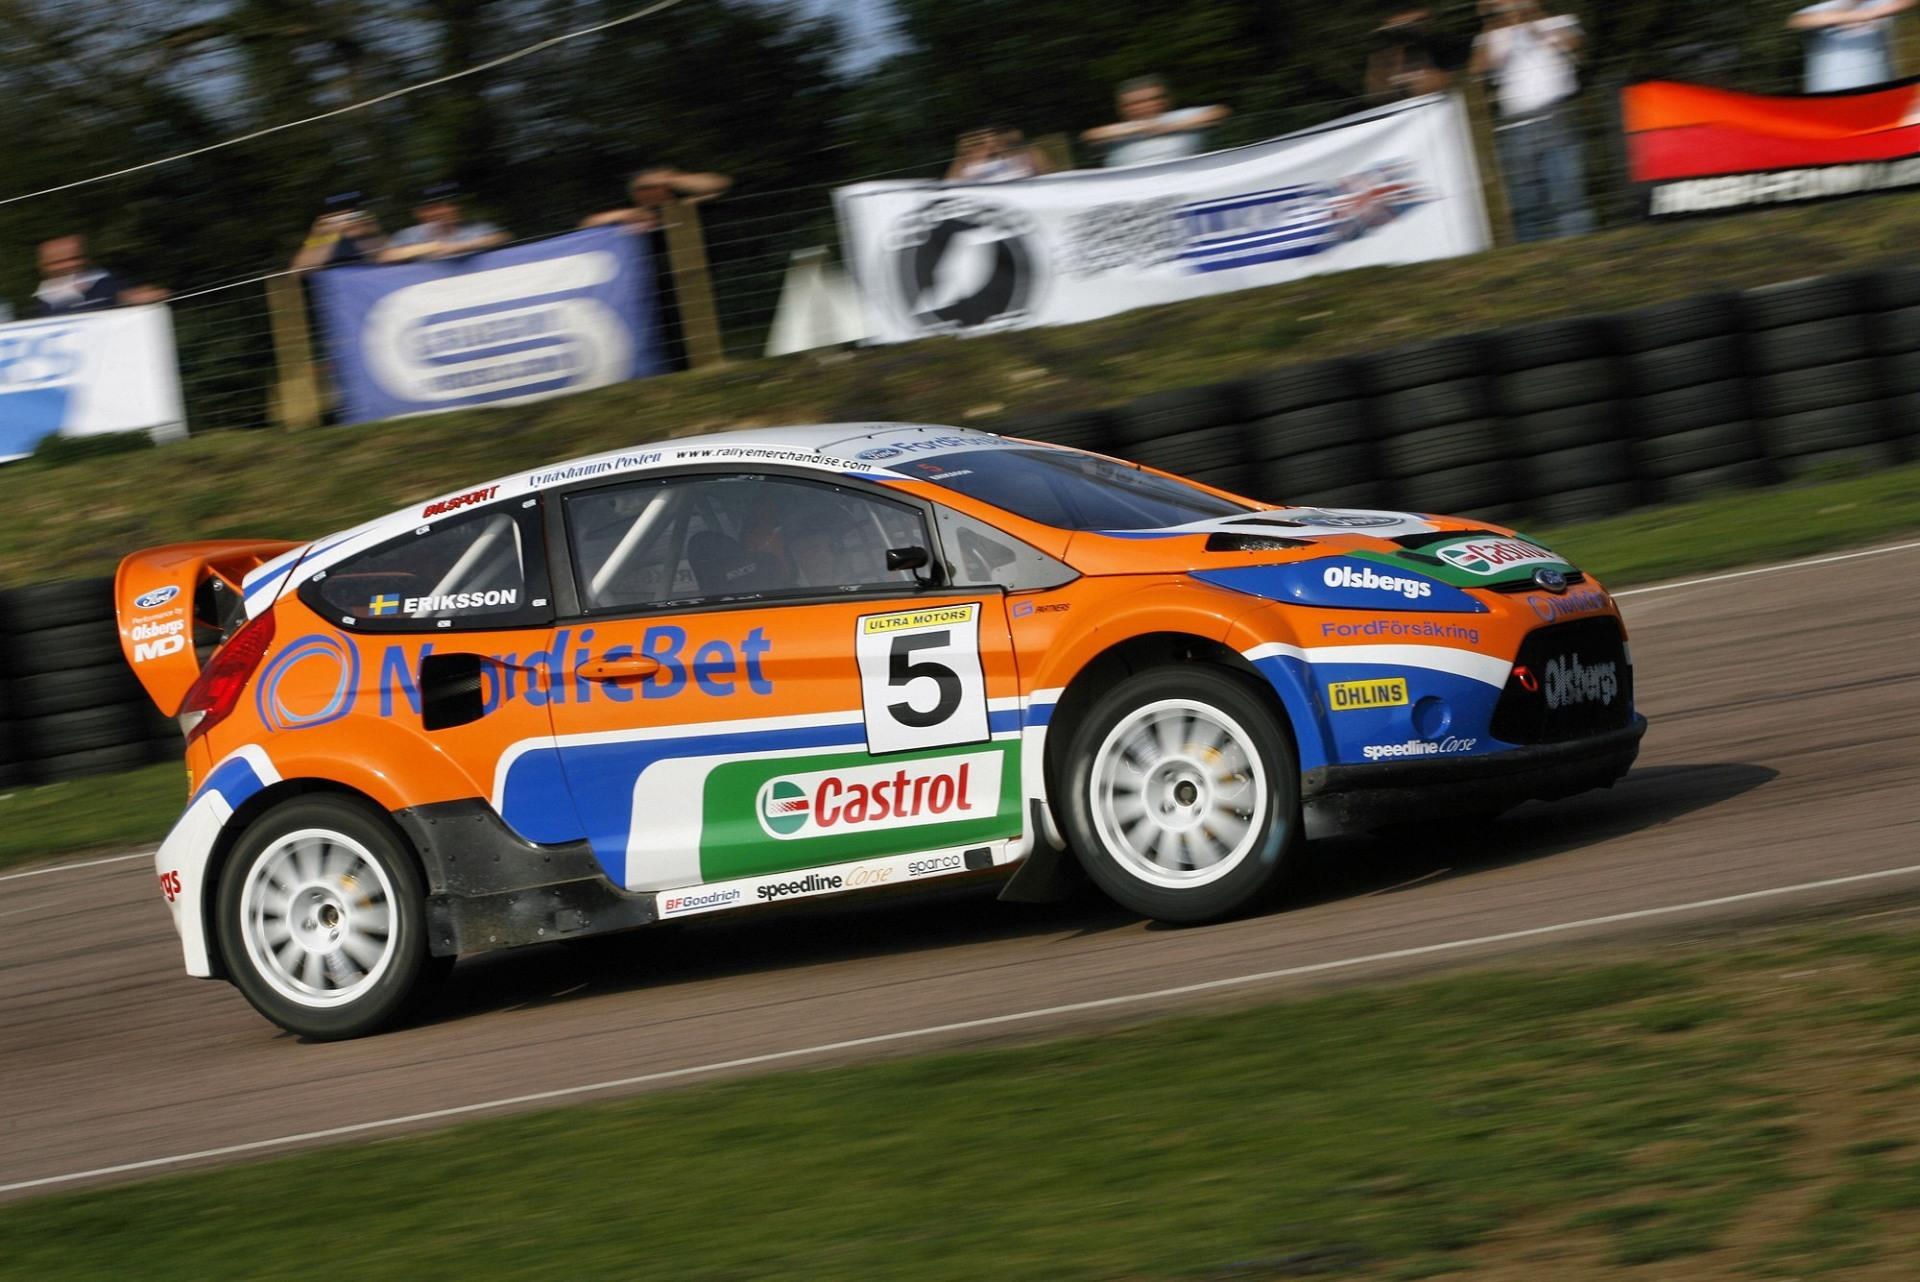 2009 ford fiesta rallycross news and information research and history. Black Bedroom Furniture Sets. Home Design Ideas